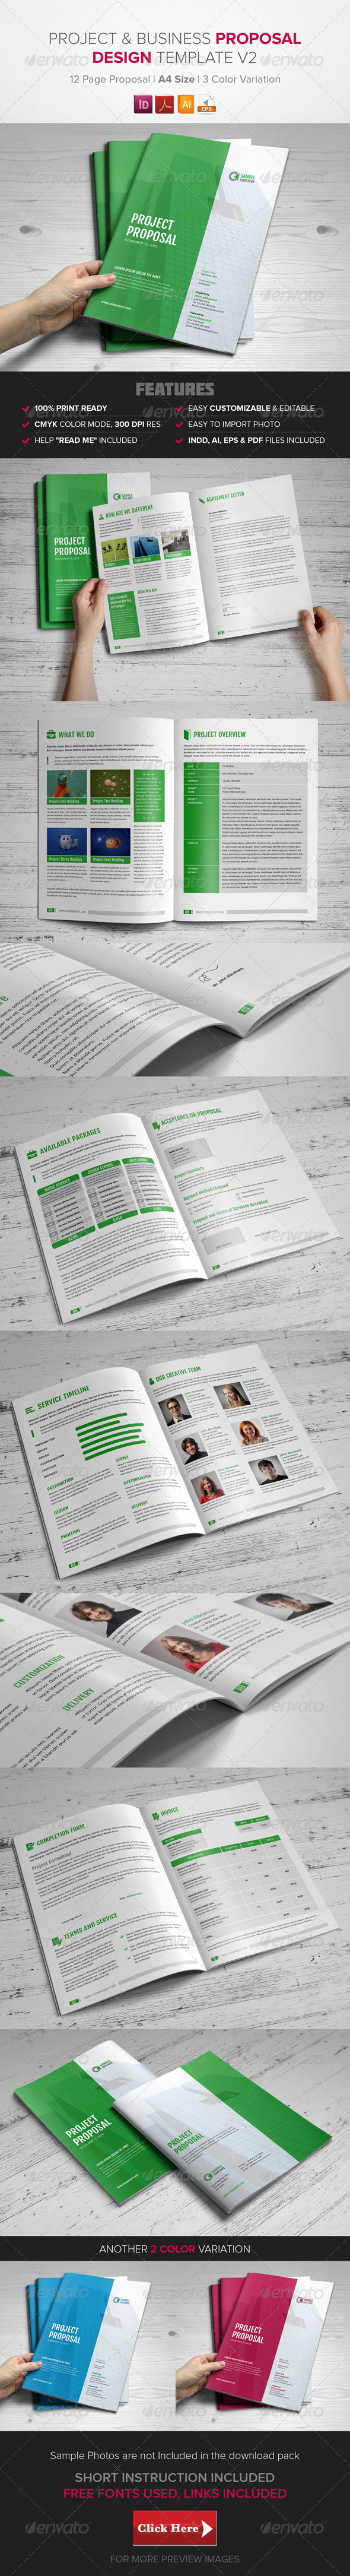 GraphicRiver Project & Business Proposal Template v2 8635775